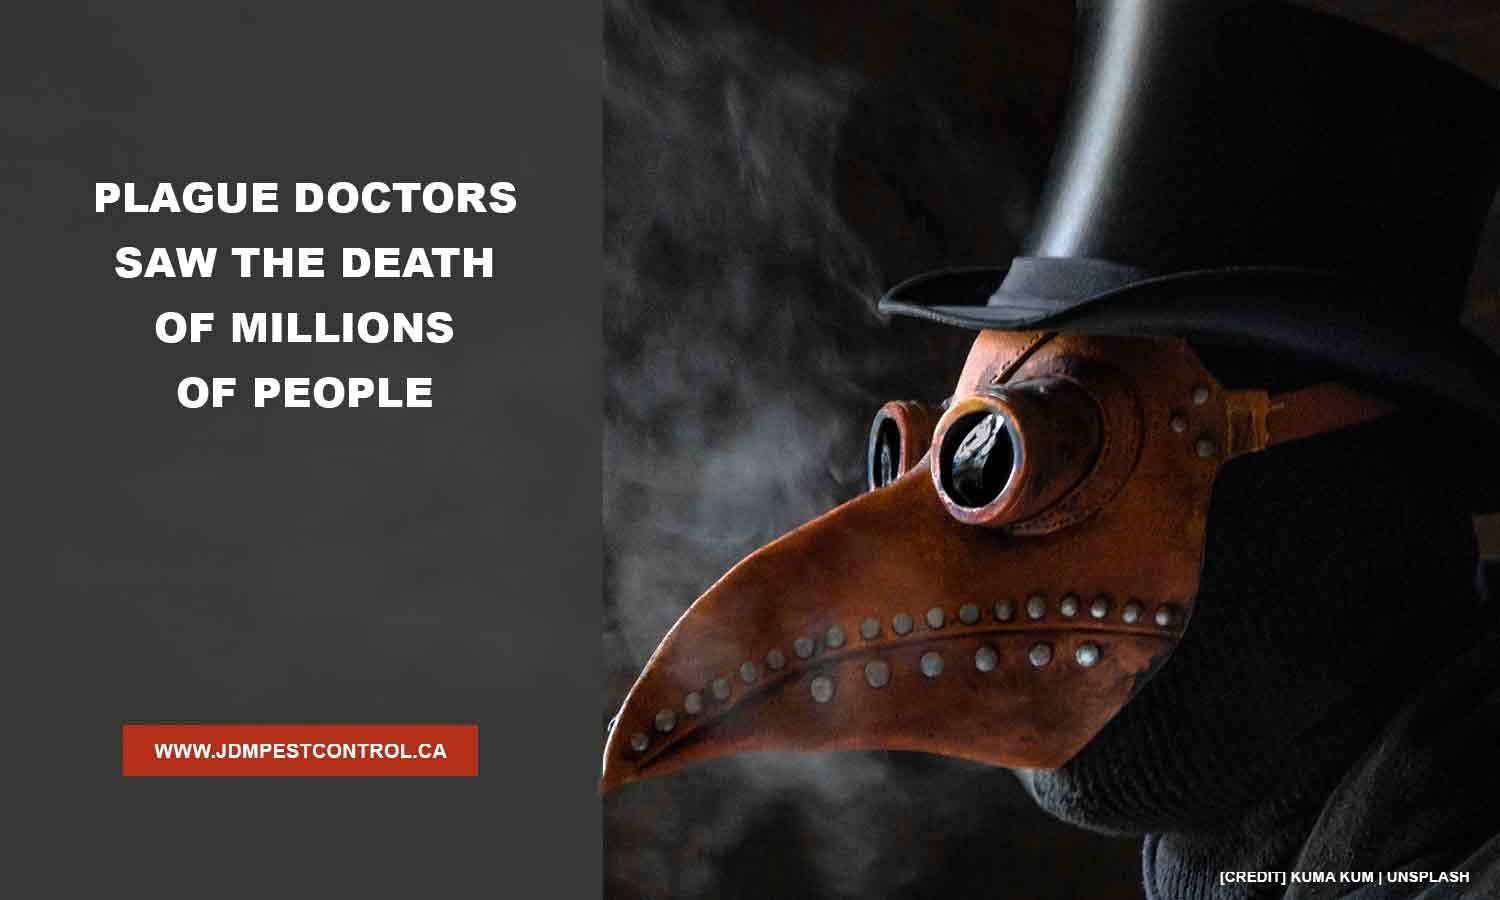 Plague doctors saw the death of millions of people